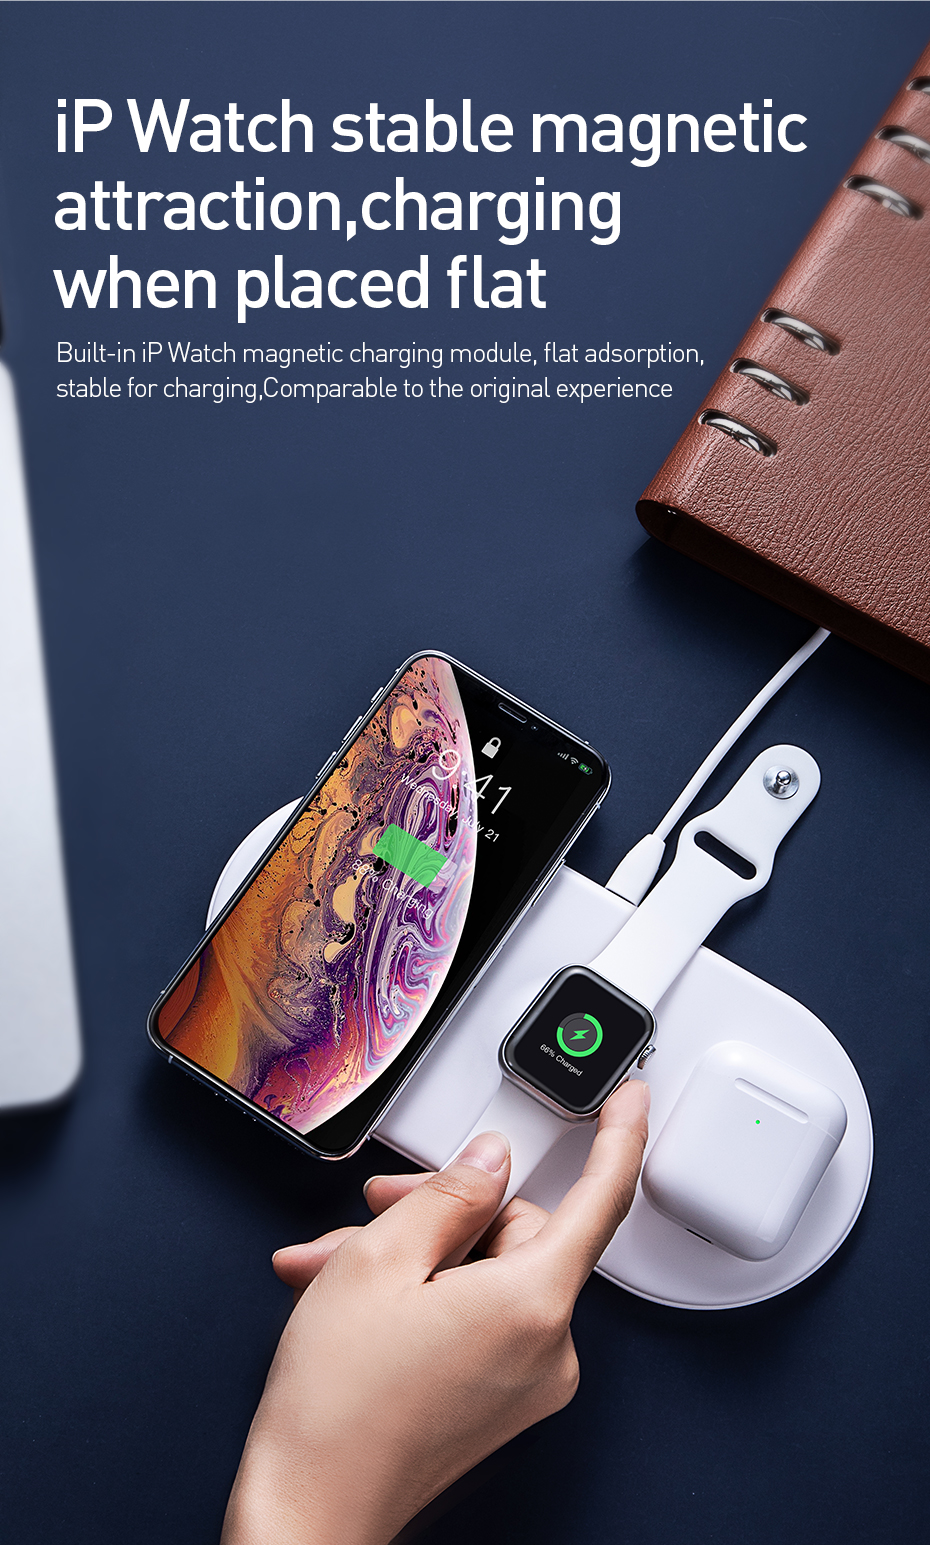 Baseus 3 In 1 Qi Wireless Charger With USB-To-Type-C Cable For Qi-enabled Mobile Phones iPhone XS Max Samsung Galaxy S10+ Apple AirPods 2019 Apple Watch Series 2 3 4